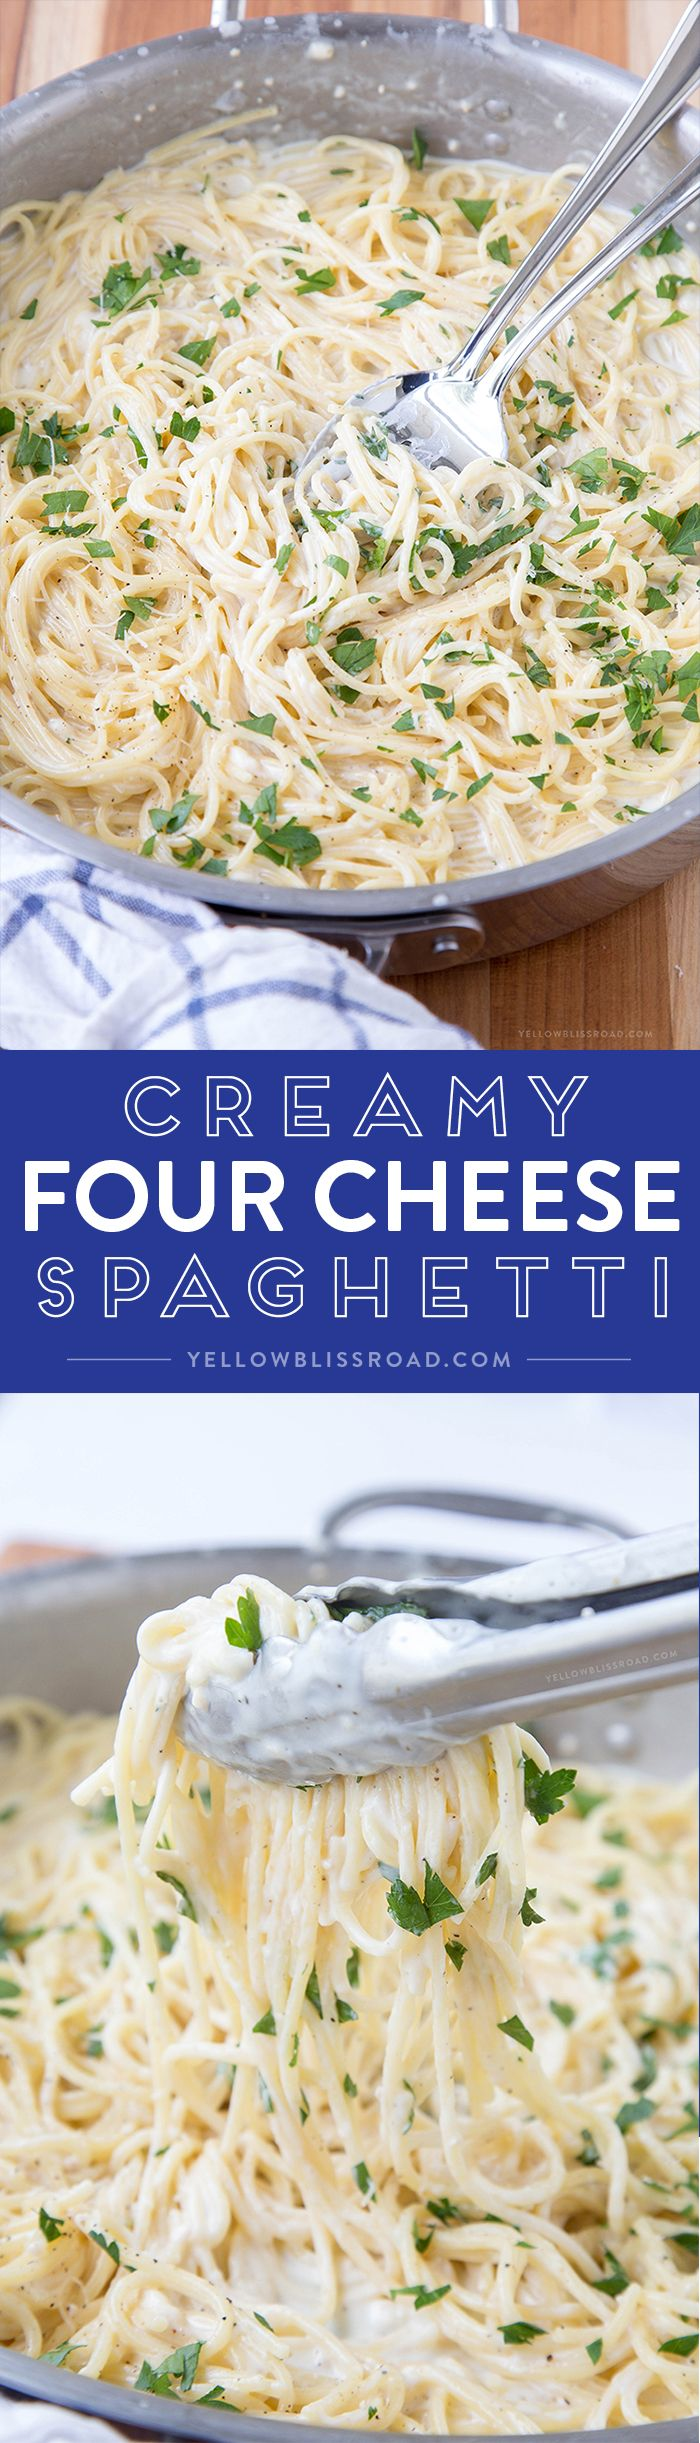 Creamy Four Cheese Spaghetti that's ready in 20 minutes! This is a fantastic and easy meal perfect for busy weeknights! (Bake Pasta Meatless)